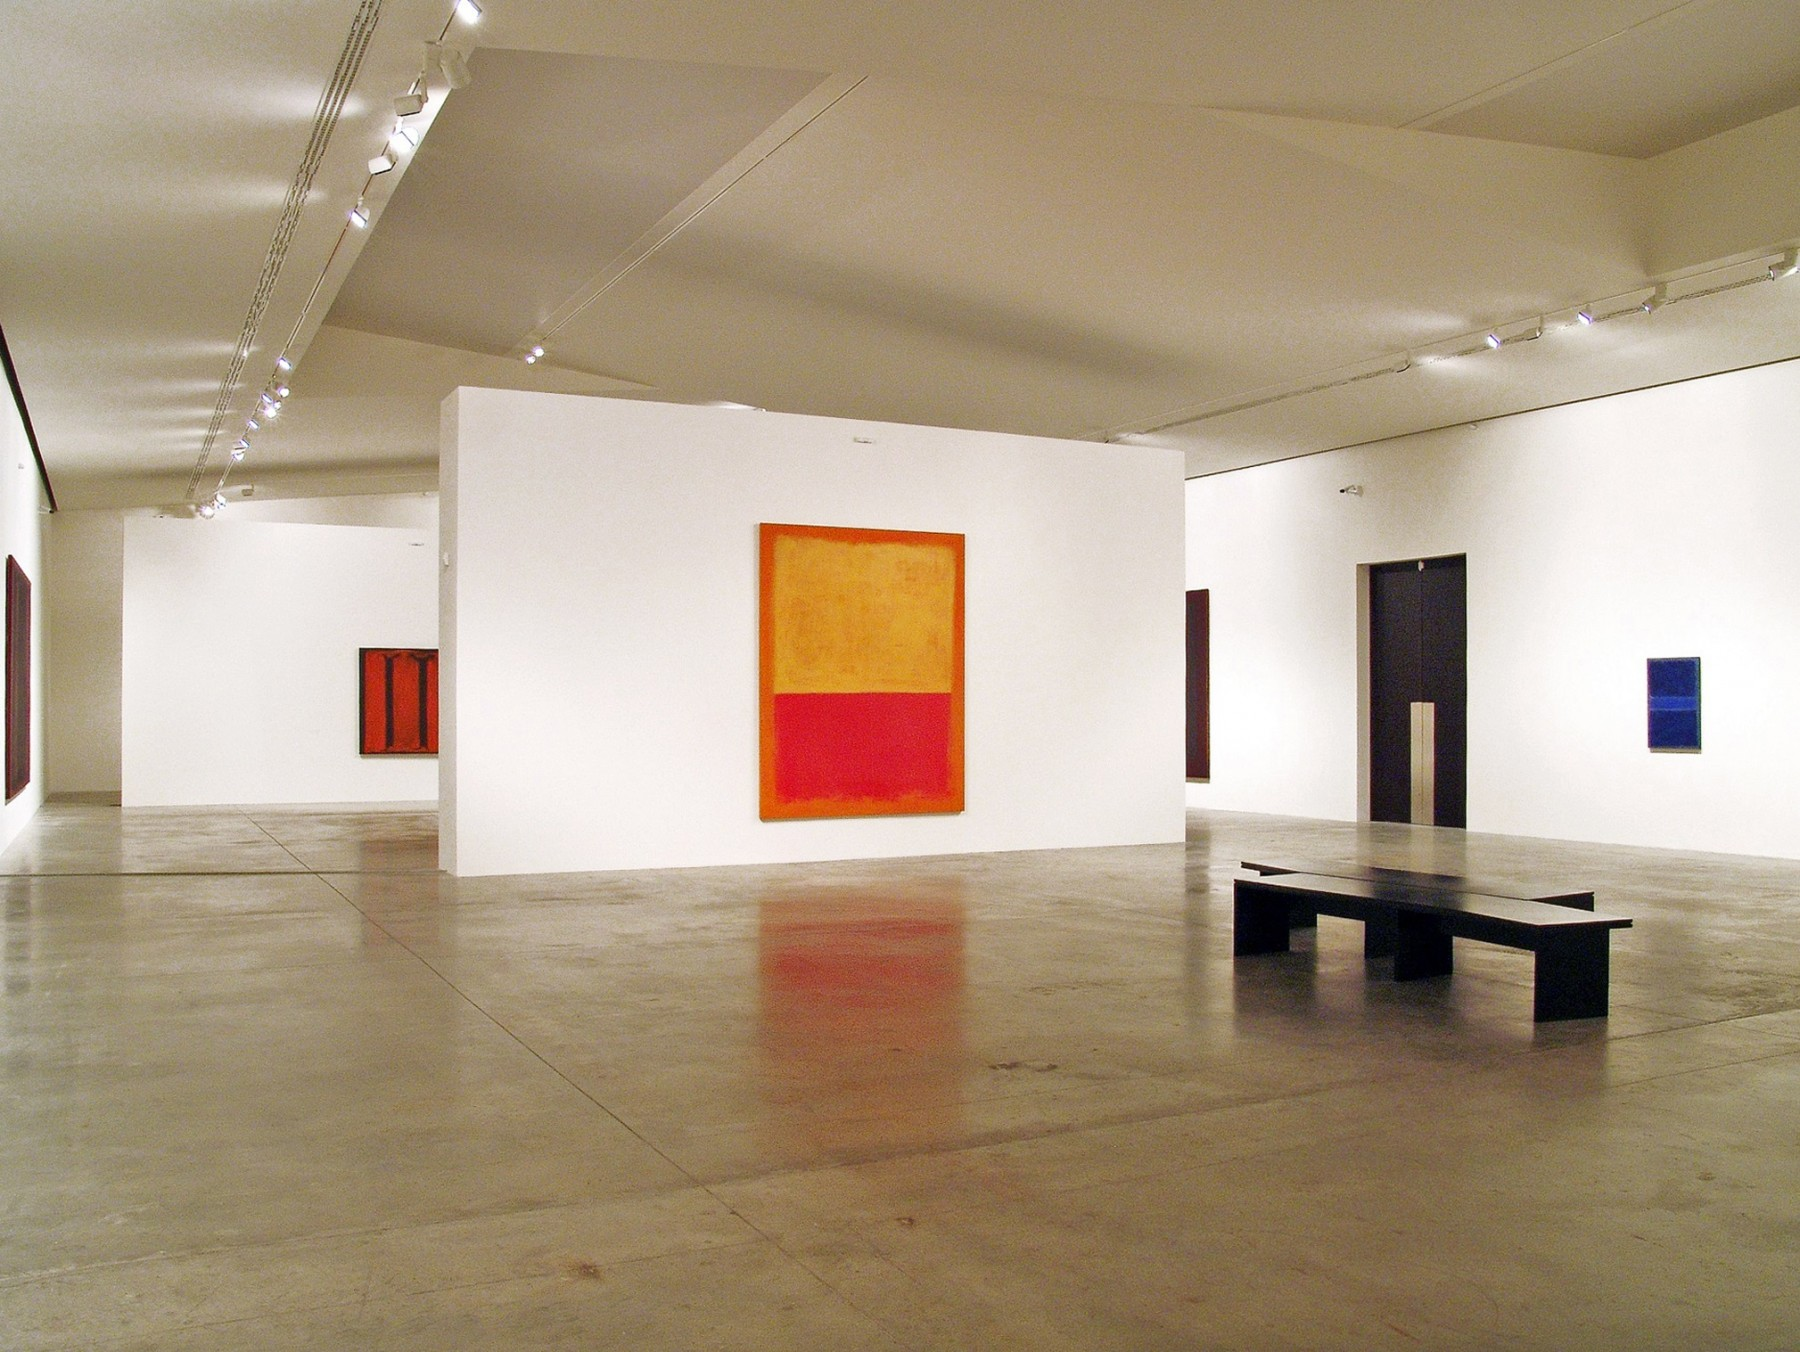 The-Garage-CCC-Moscow-Russia-Art-gallery-centre-contemporary-culture-modern-Daria-Zhukova-Jamie-Fobert-Architects-exhibition-Mark-Rothko-2ret